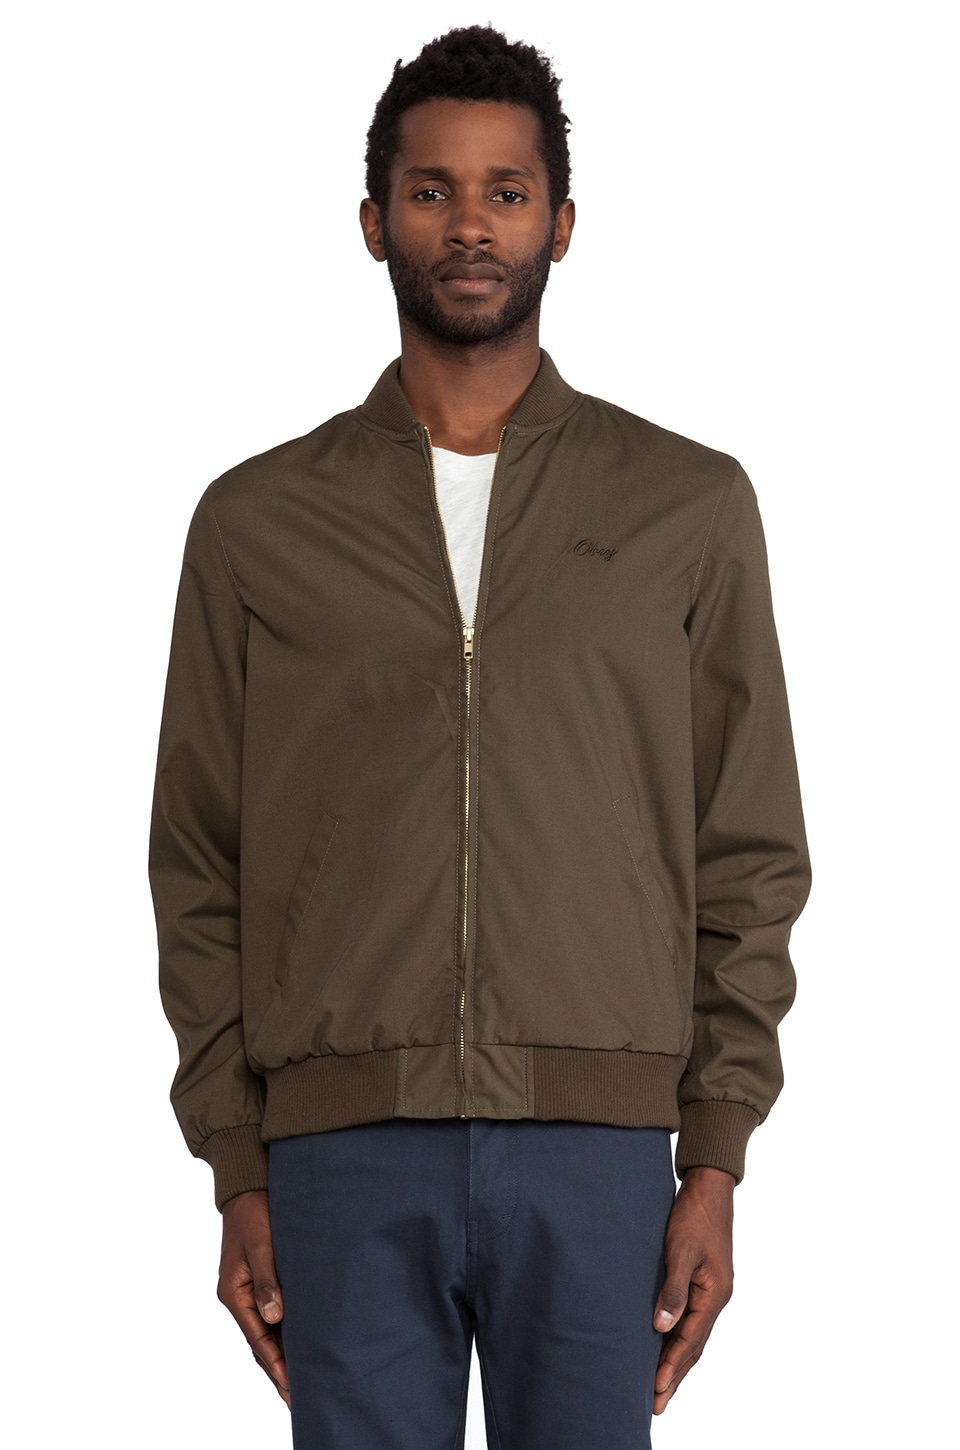 Obey Coastline Jacket in Army